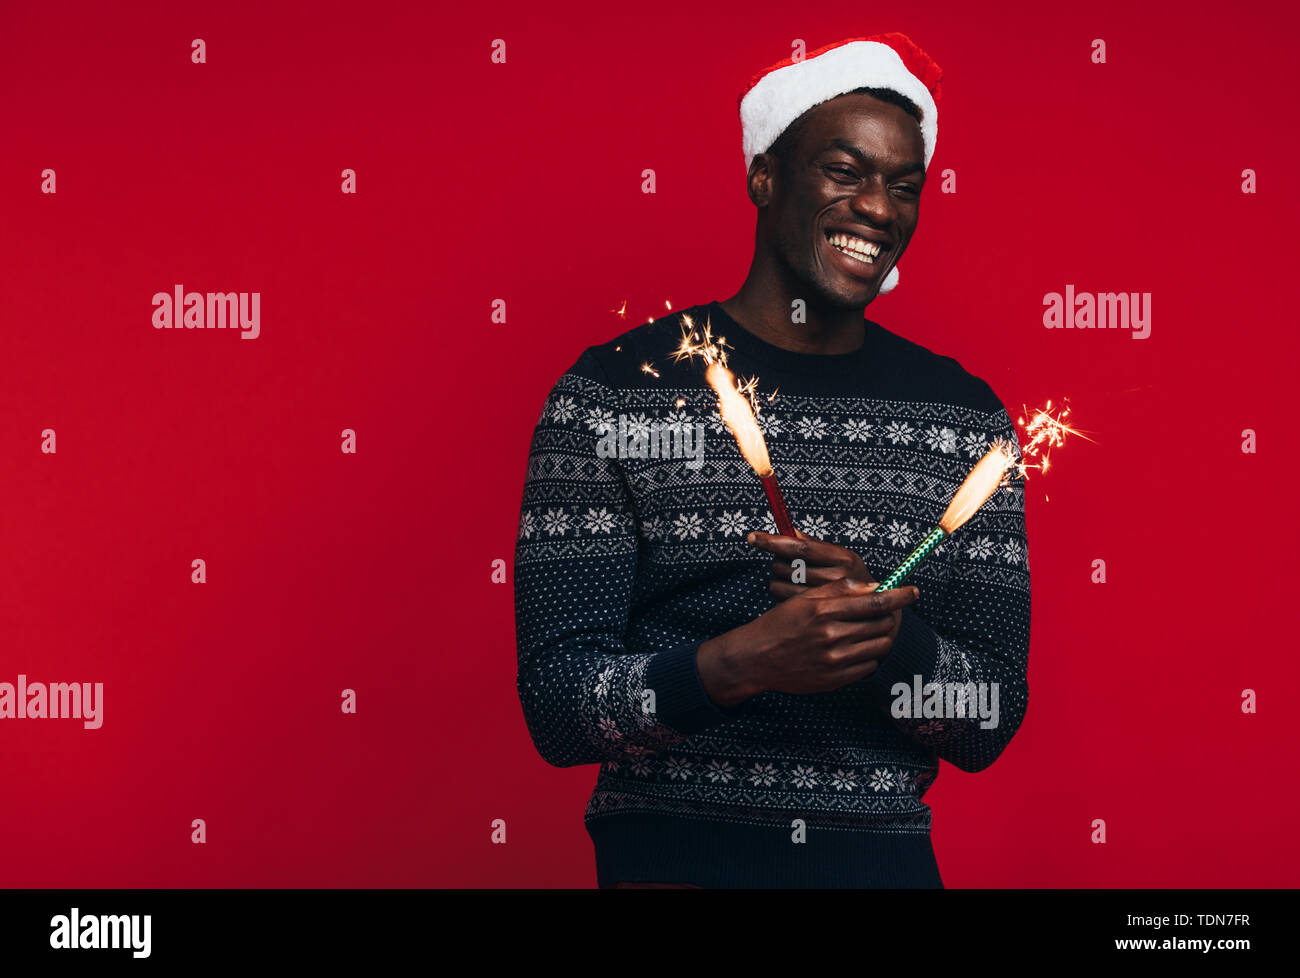 Cheerful young african man in santa hat celebrating with sparklers. Young guy enjoying with fireworks on red background - Stock Image